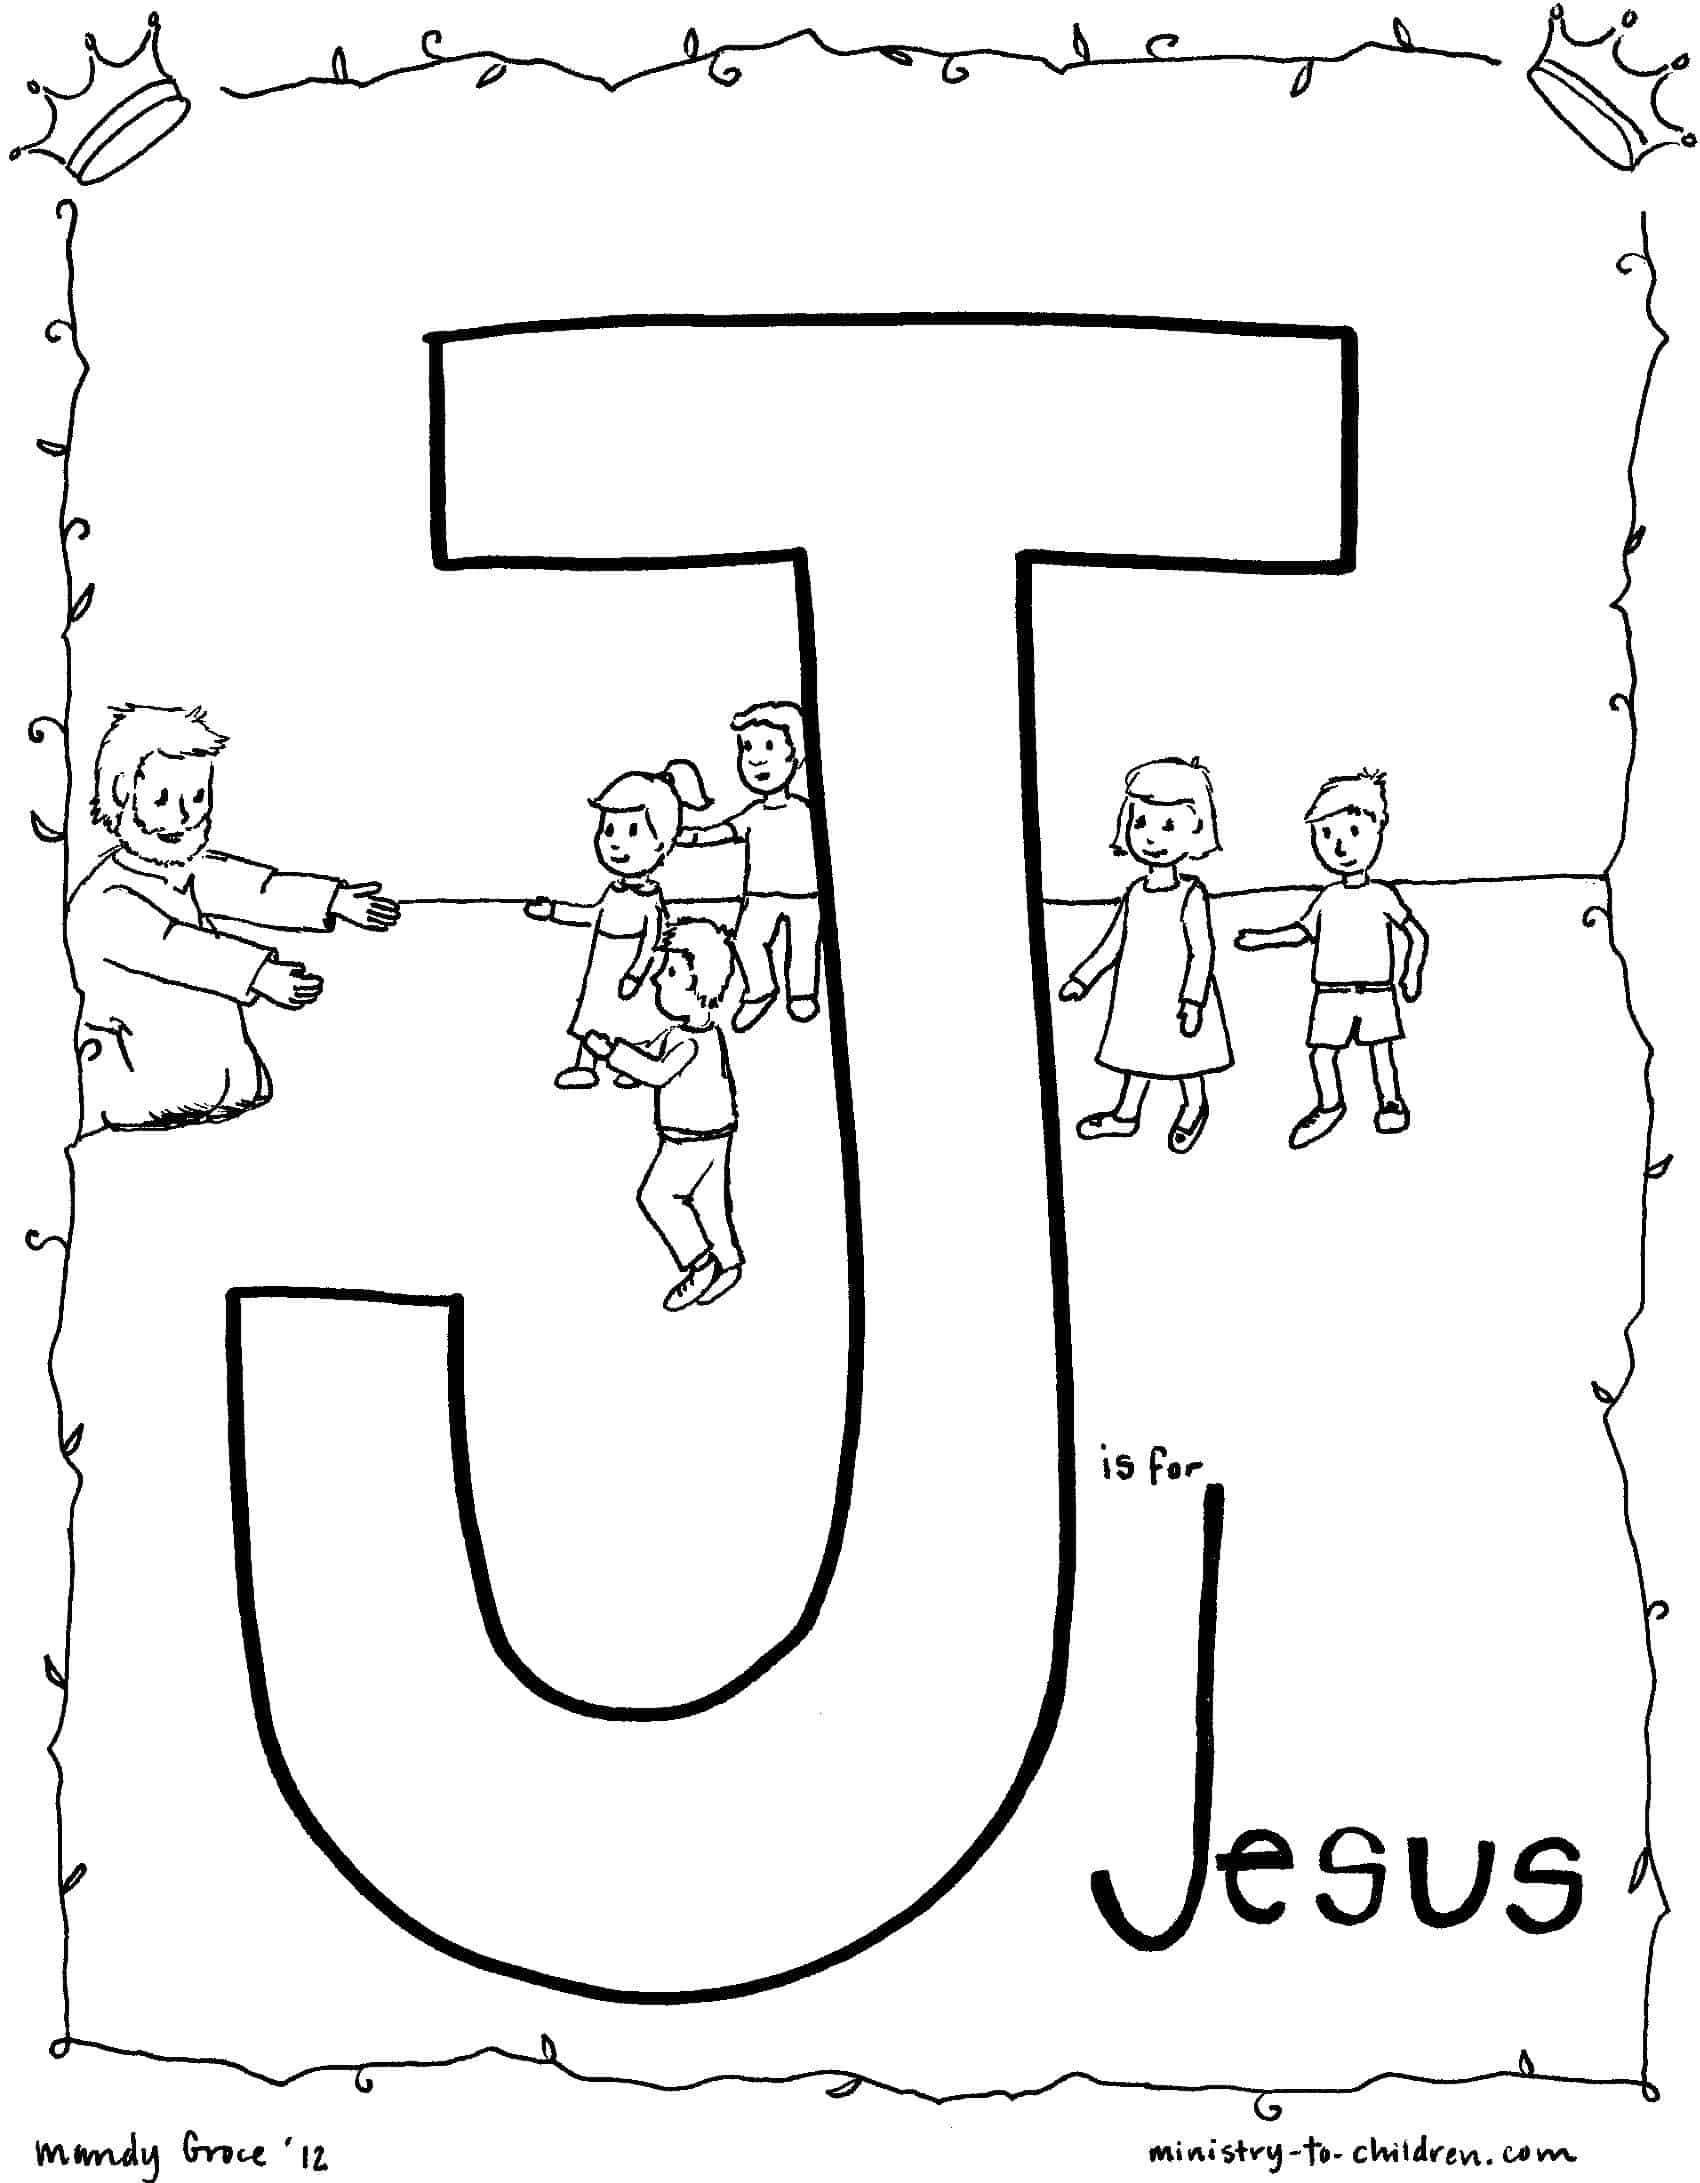 Coloring festival: Arrest and trial of jesus coloring pages |More ... | 2183x1700